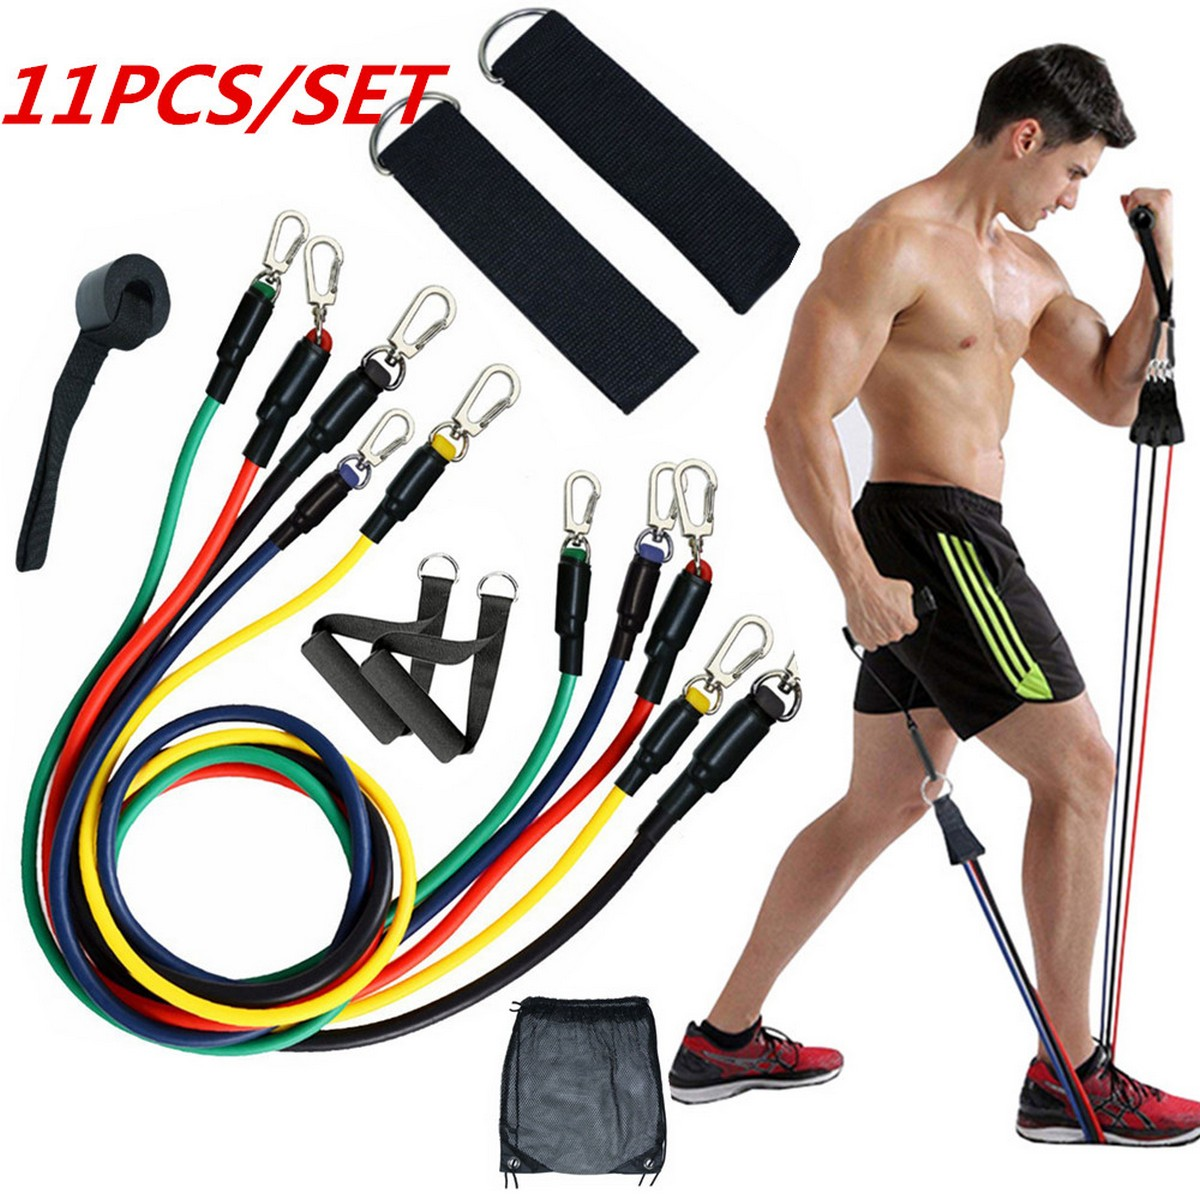 11PC Resistance Bands Set with Fitness Tubes Fitness Exercise Resistance Bands Set Men Women, Fitness Stretch Workout Bands Foam Handles, Ankle Straps, Door Anchor for Home Gym Fitness, Physical Therapy